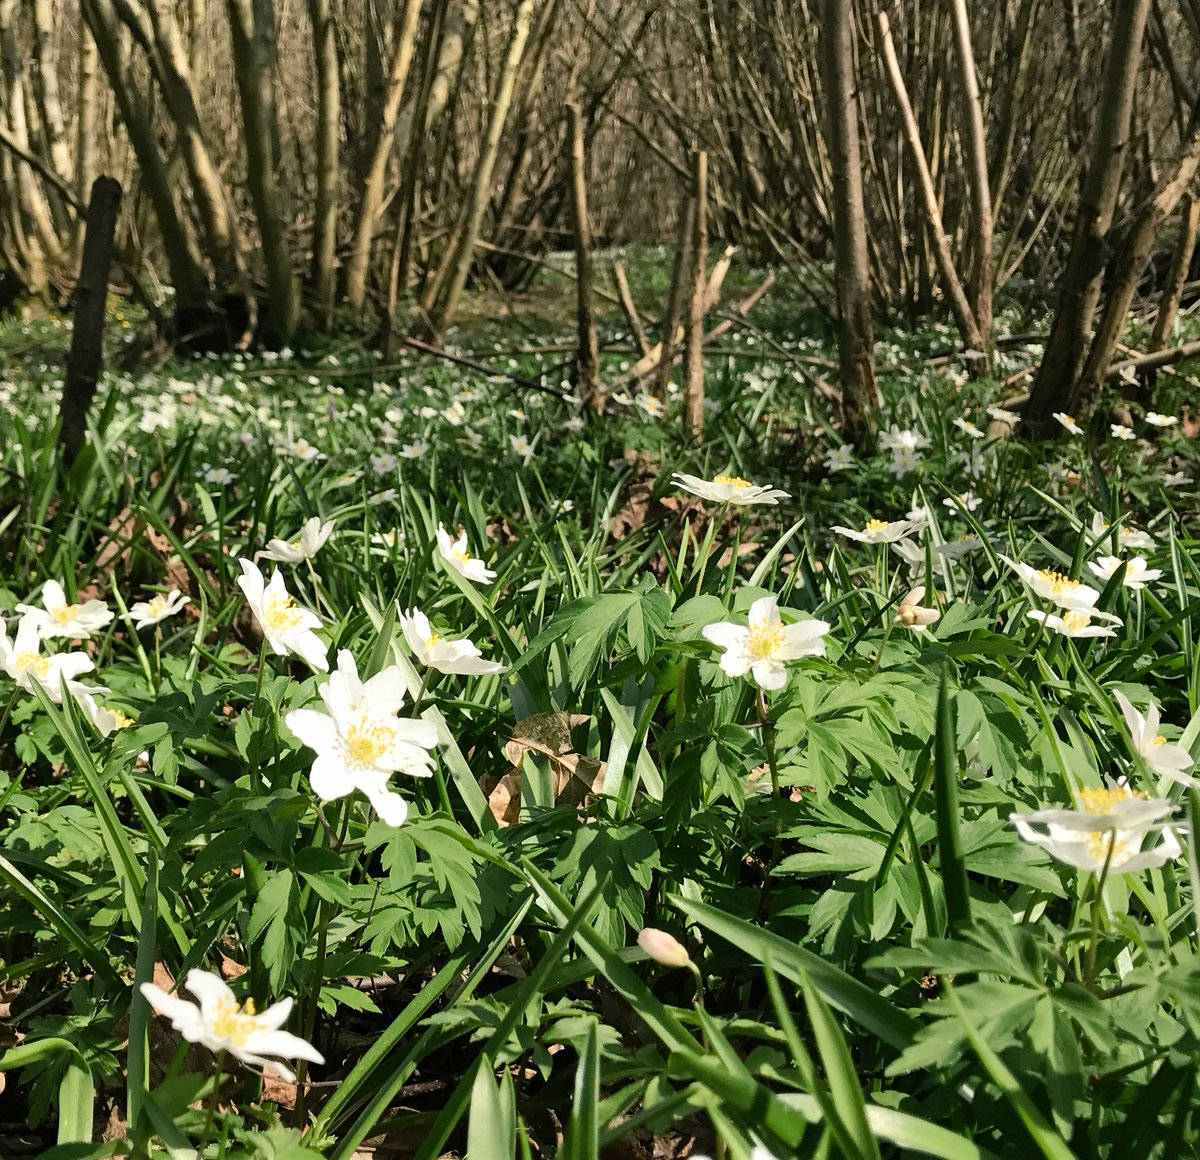 WoodLand Walks #Anenome #AncientWoodland ???? https://t.co/VyavYCg3lQ